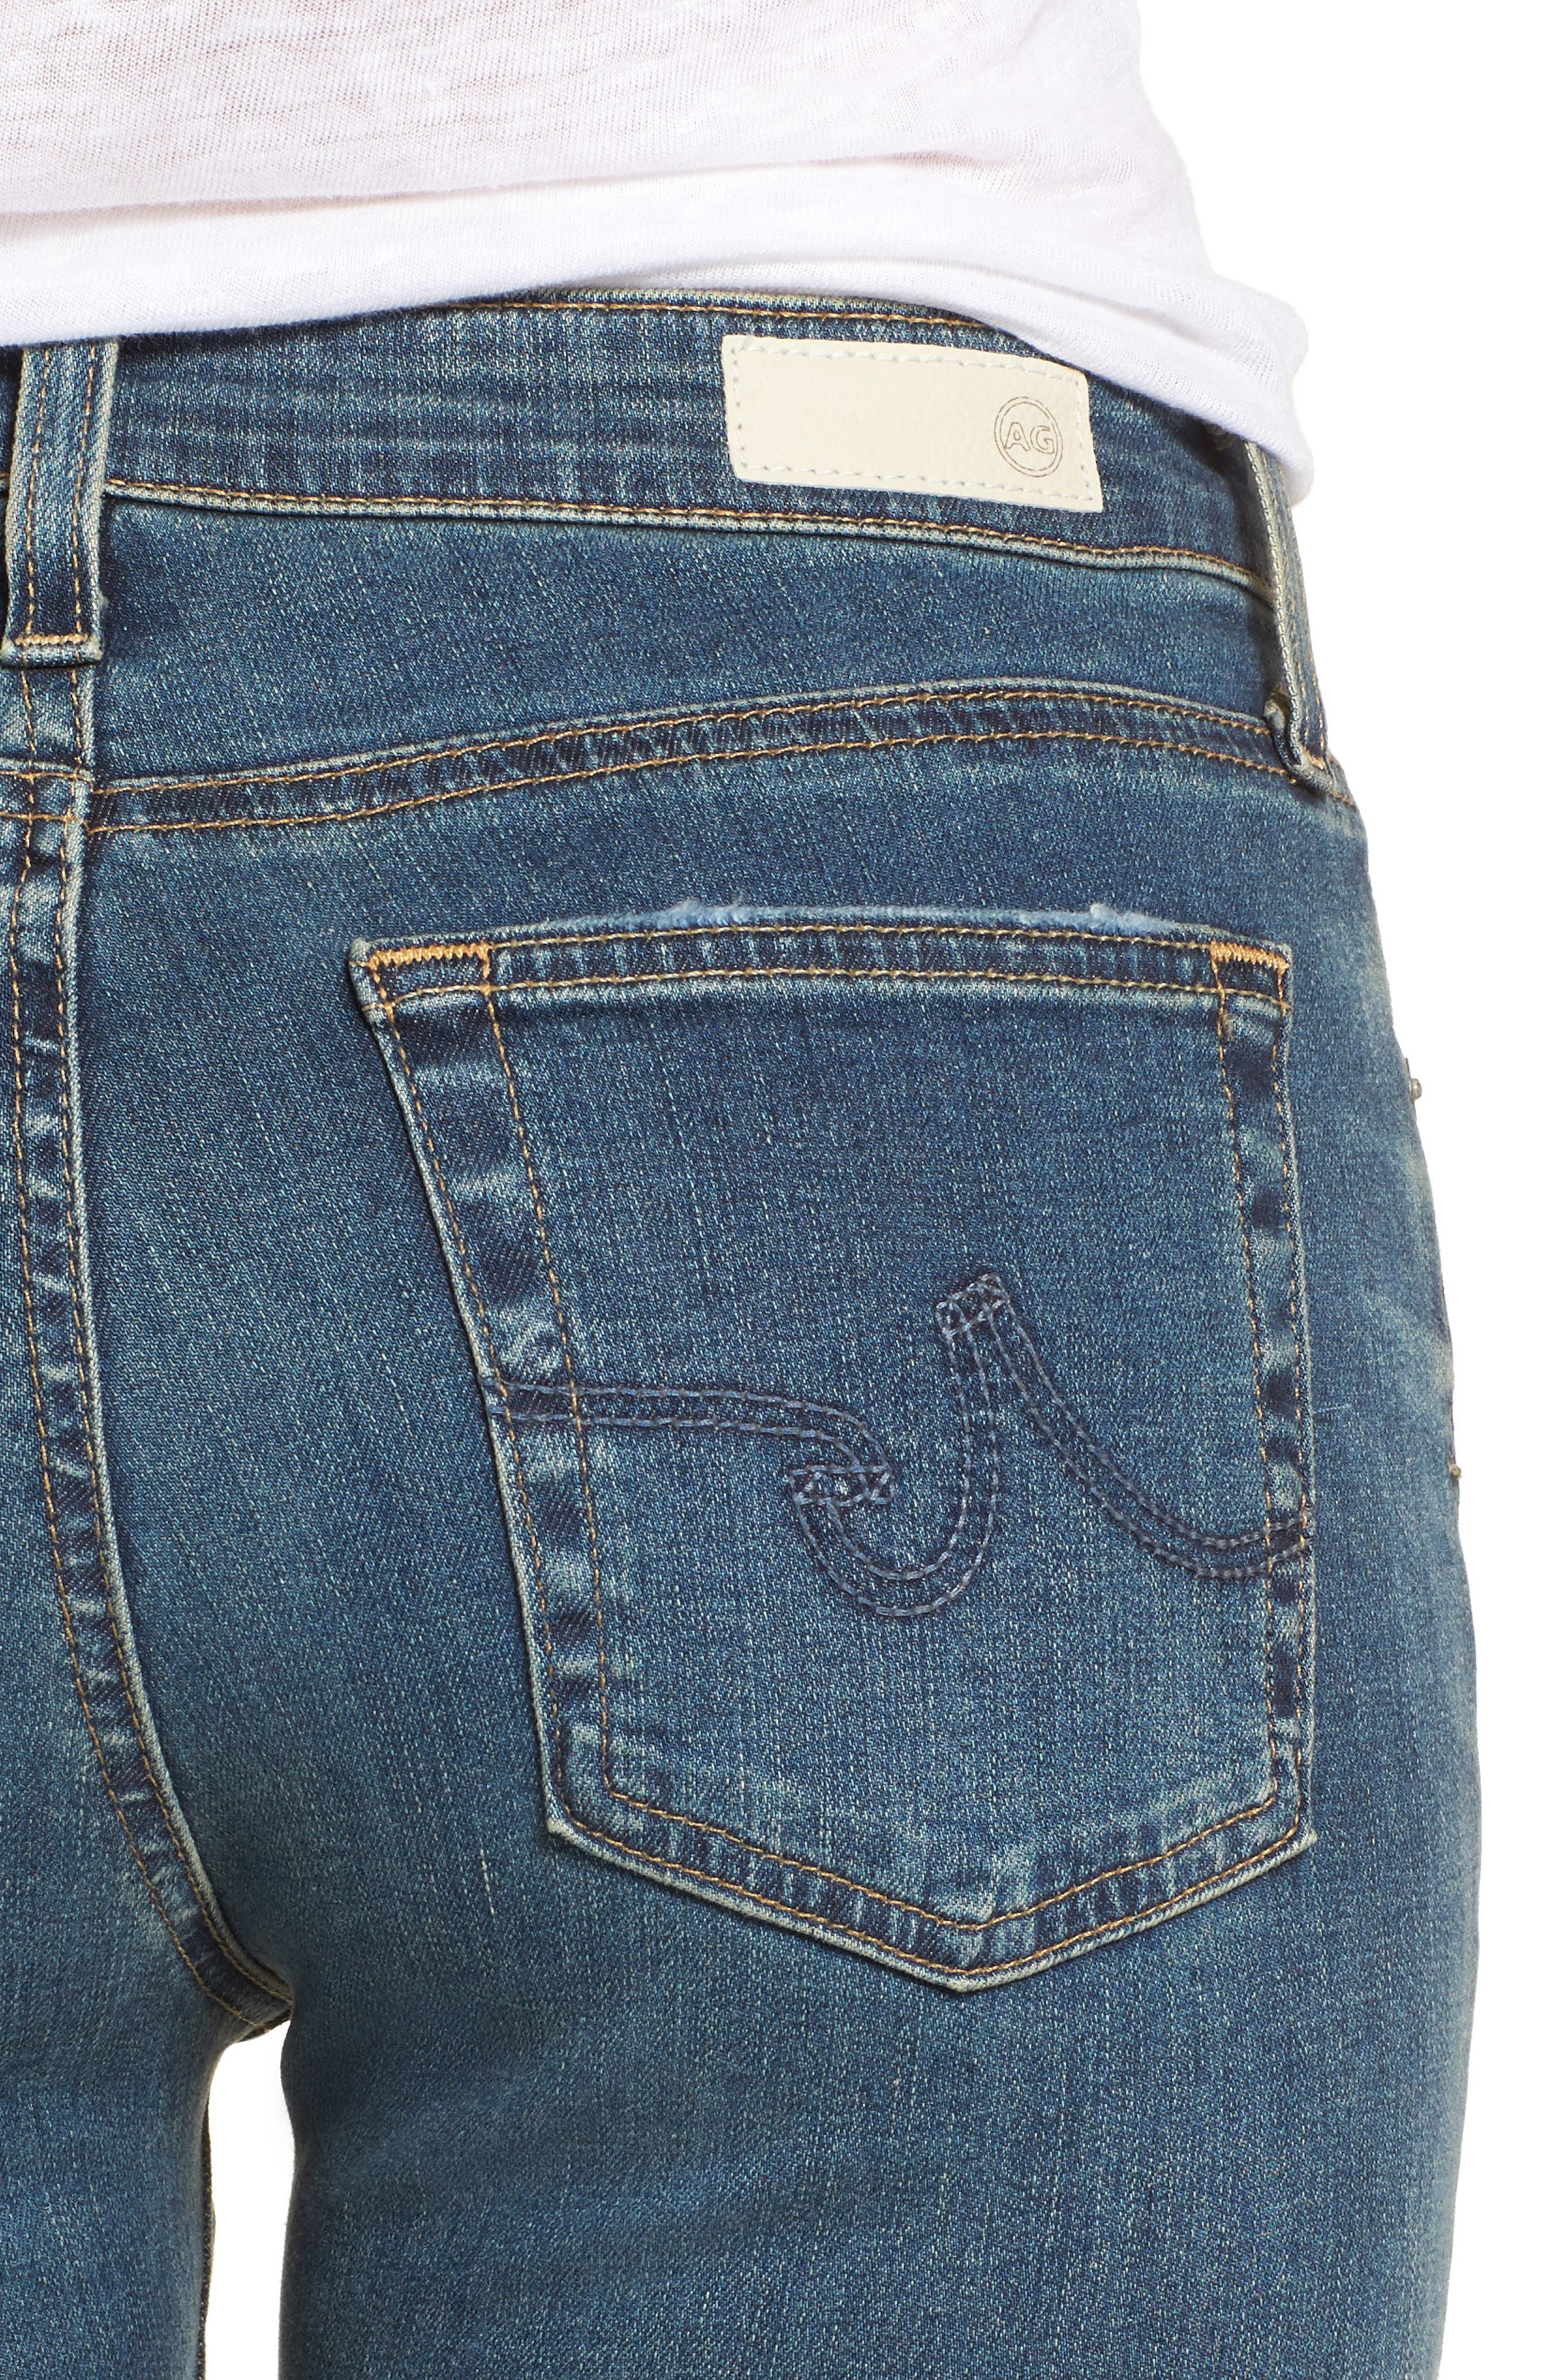 Alternate Image 4  - AG The Farrah High Waist Ankle Skinny Jeans (10 Years Brewed)